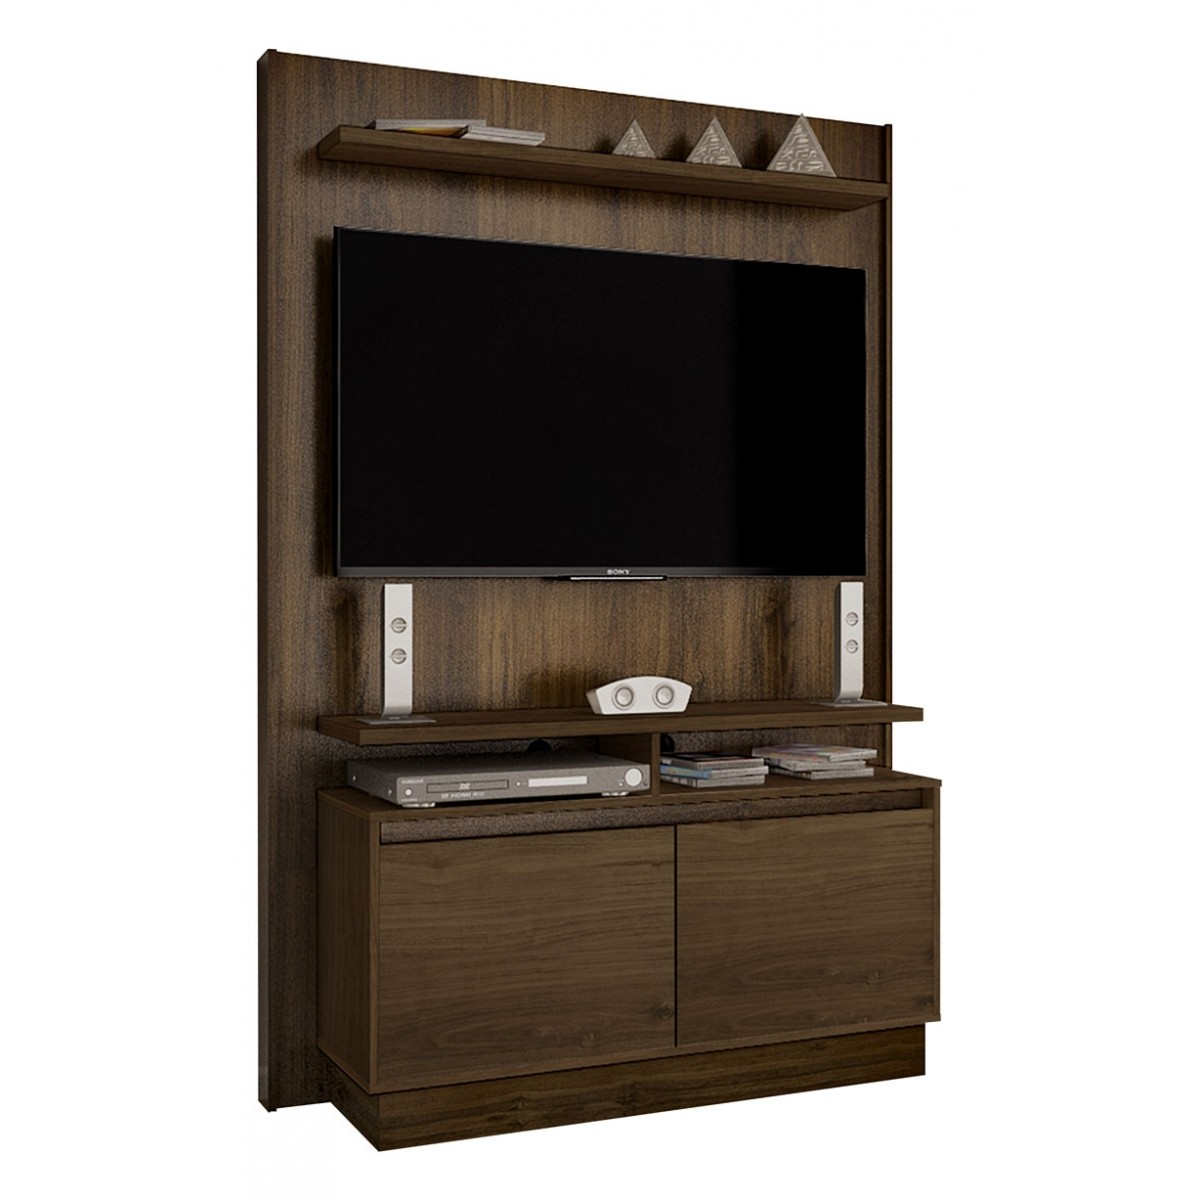 Home Theater Fit Imbuia - Imcal